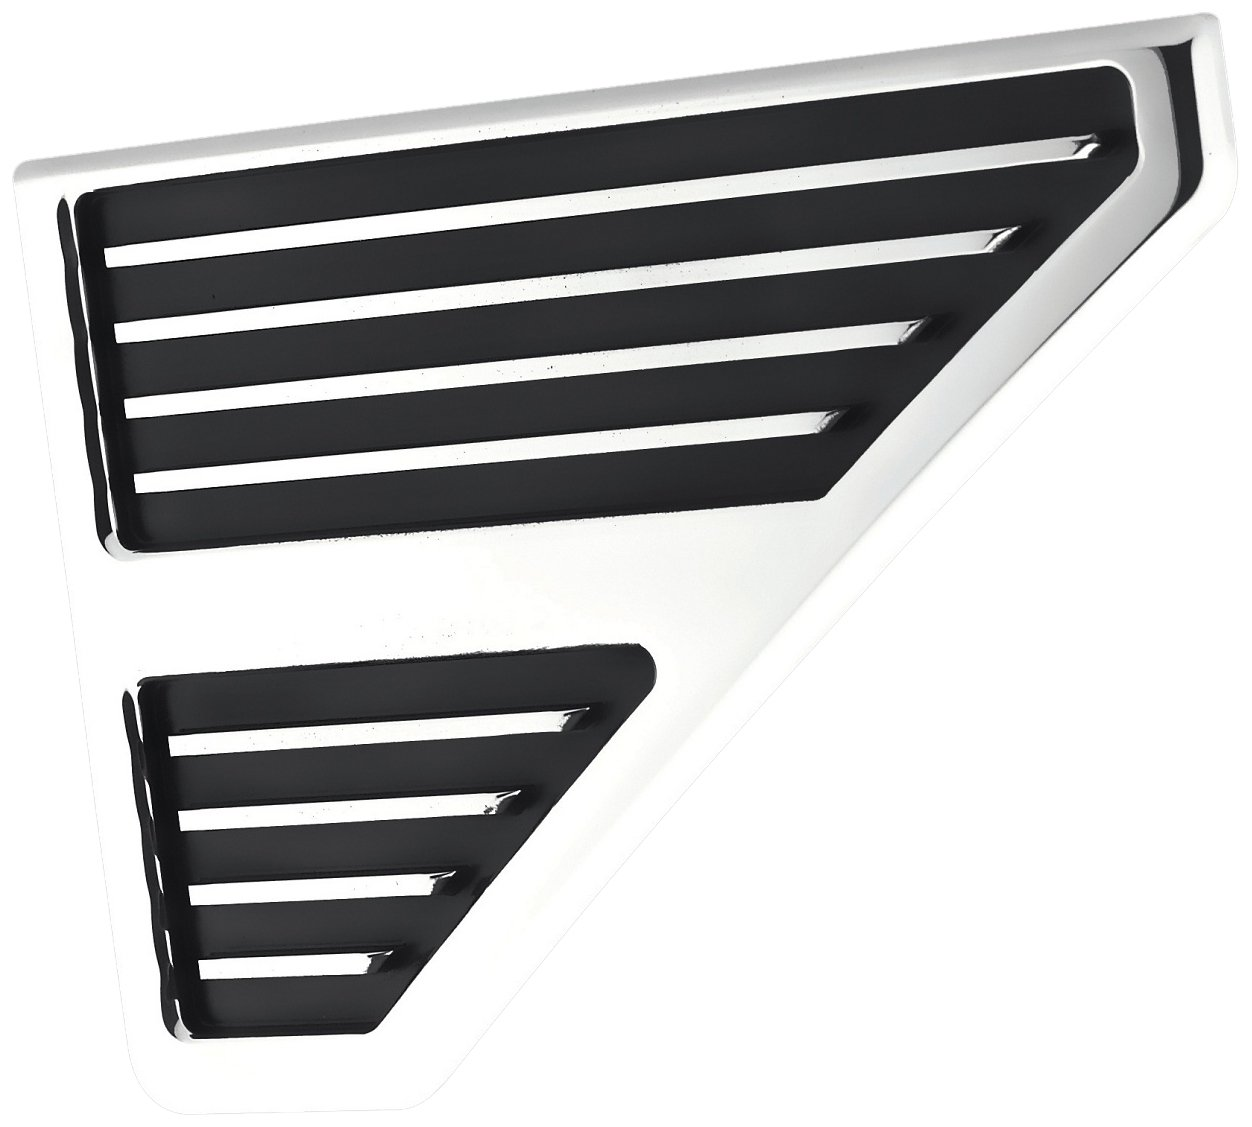 GenRight Off Road LVR-1008 Black 3 Piece Hood Louver Vent Set For Jeep Cherokee Wrangler Fits Any Vehicle Universal Fit